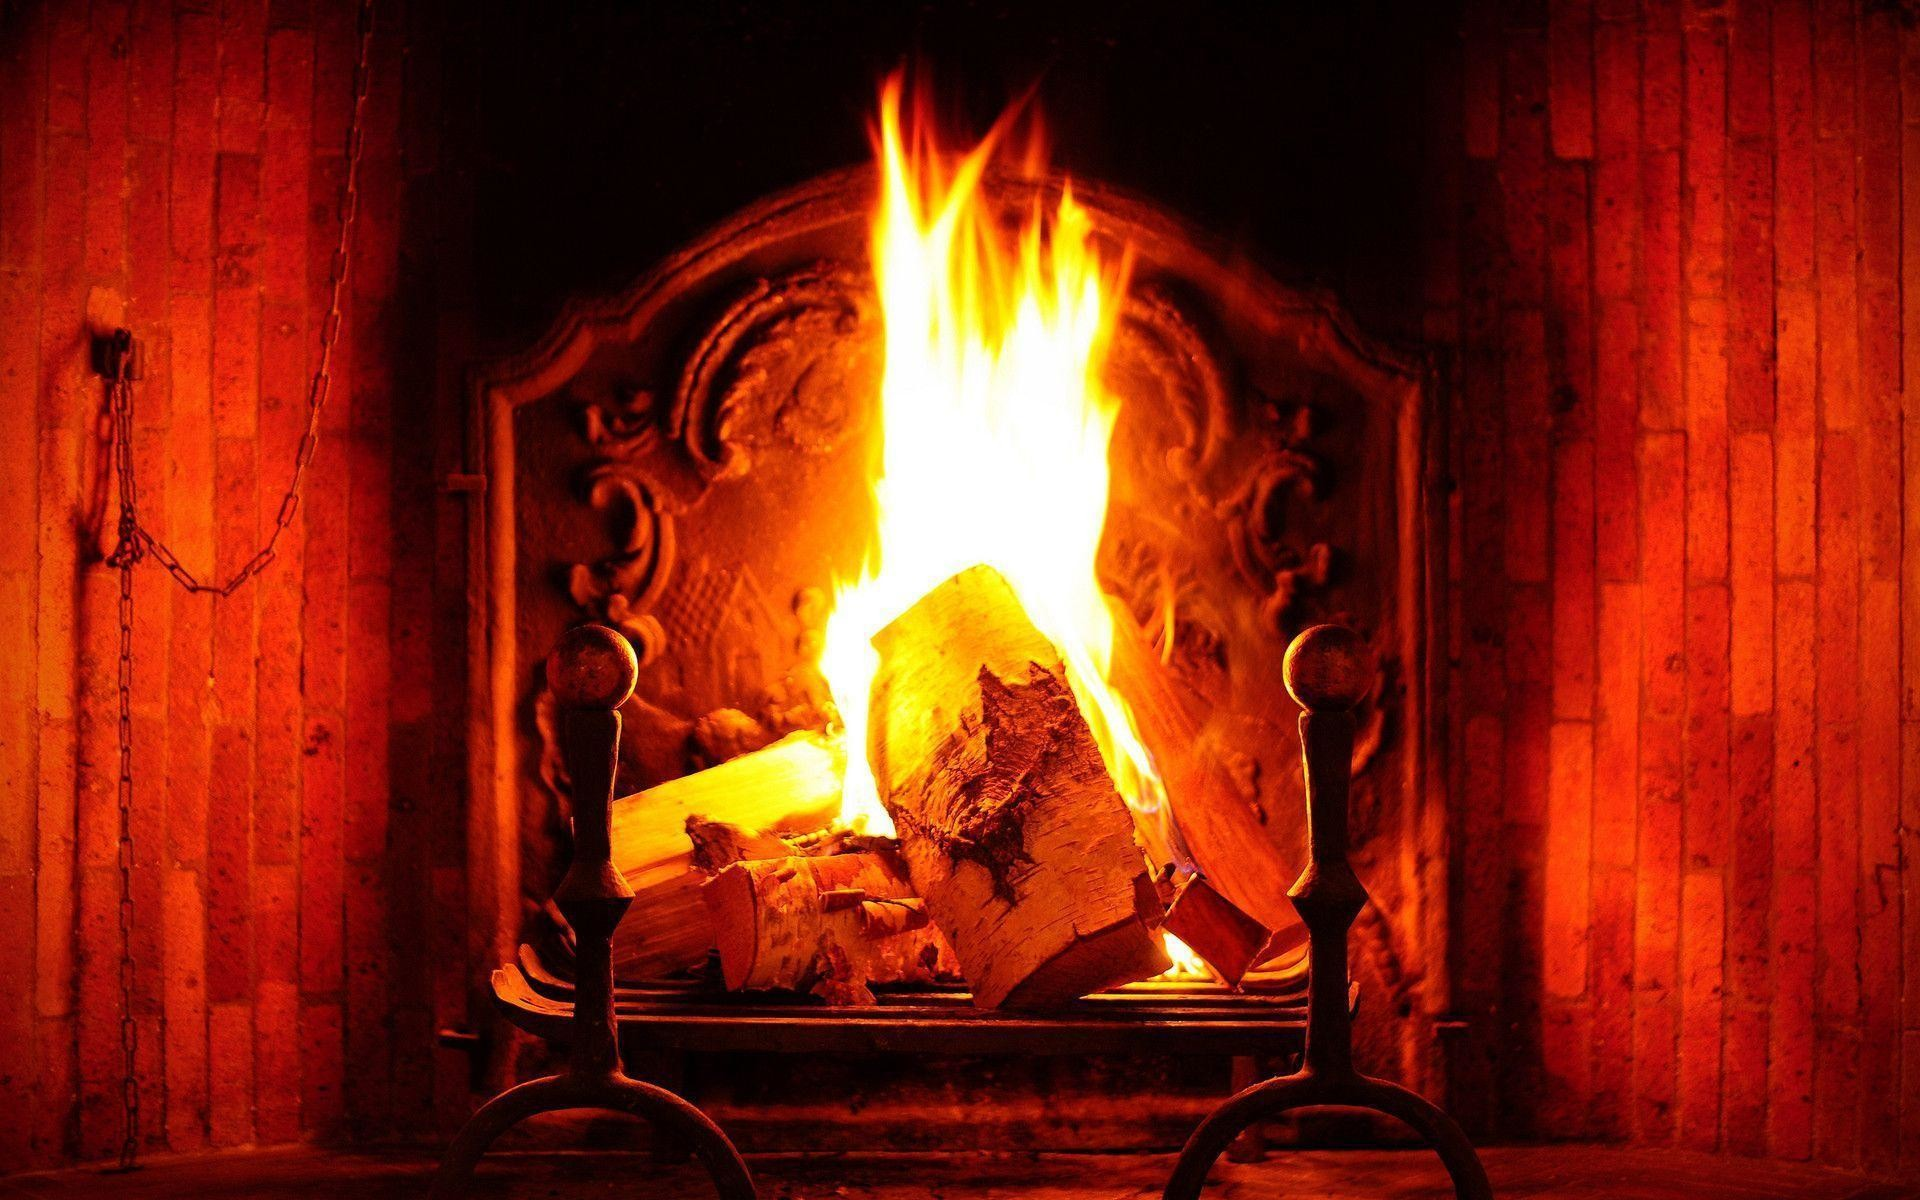 Res: 1920x1200, Most Downloaded Fireplace Wallpapers - Full HD wallpaper search